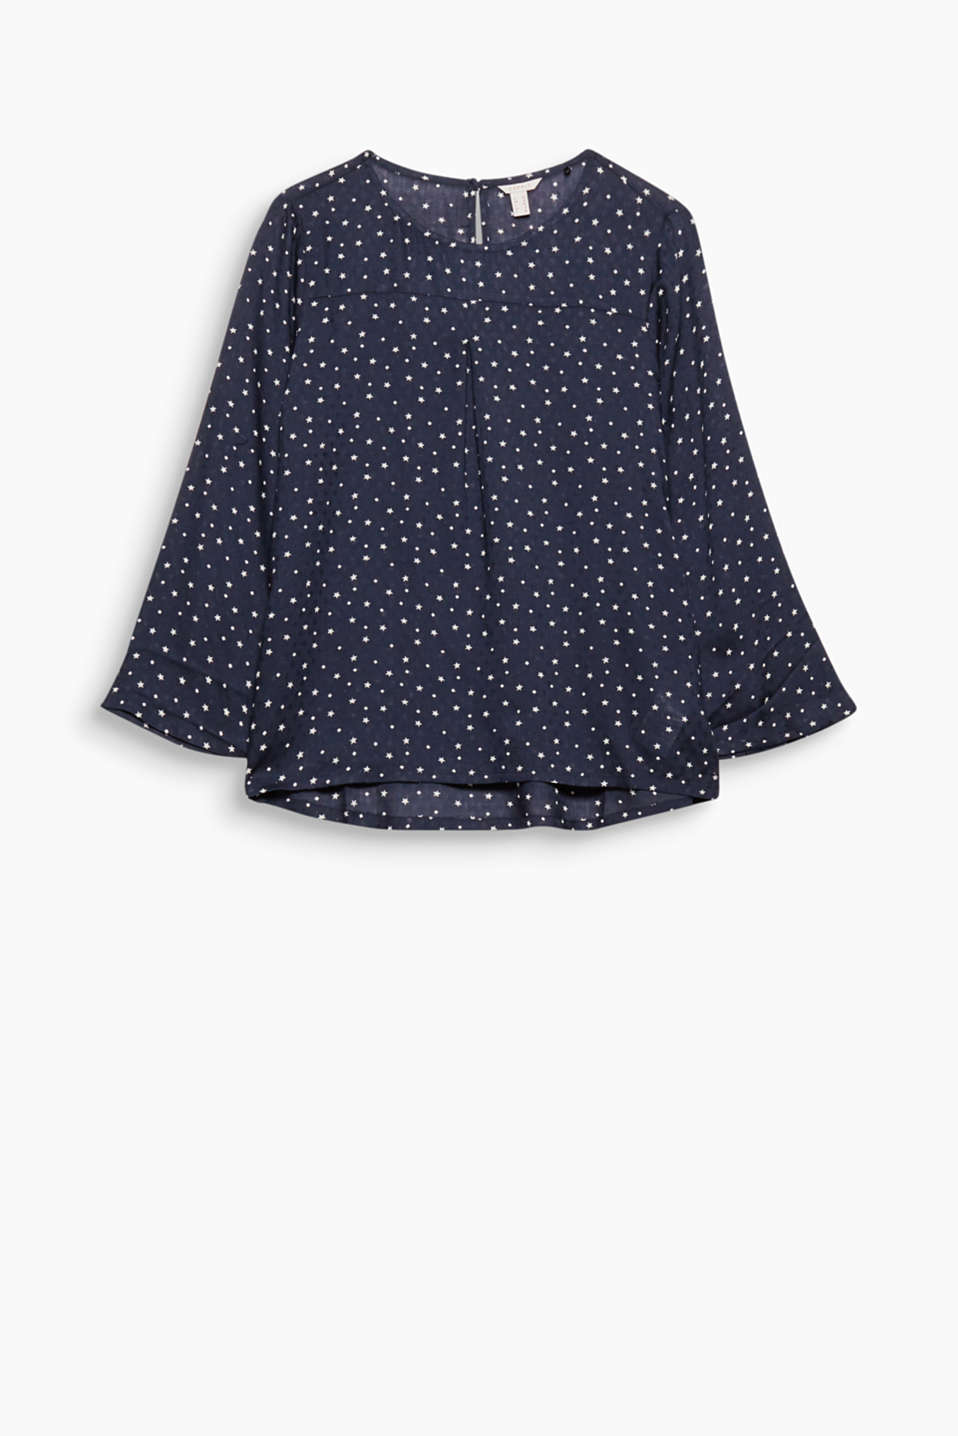 This dainty blouse with a fine texture and star print feels like nothing against your skin!